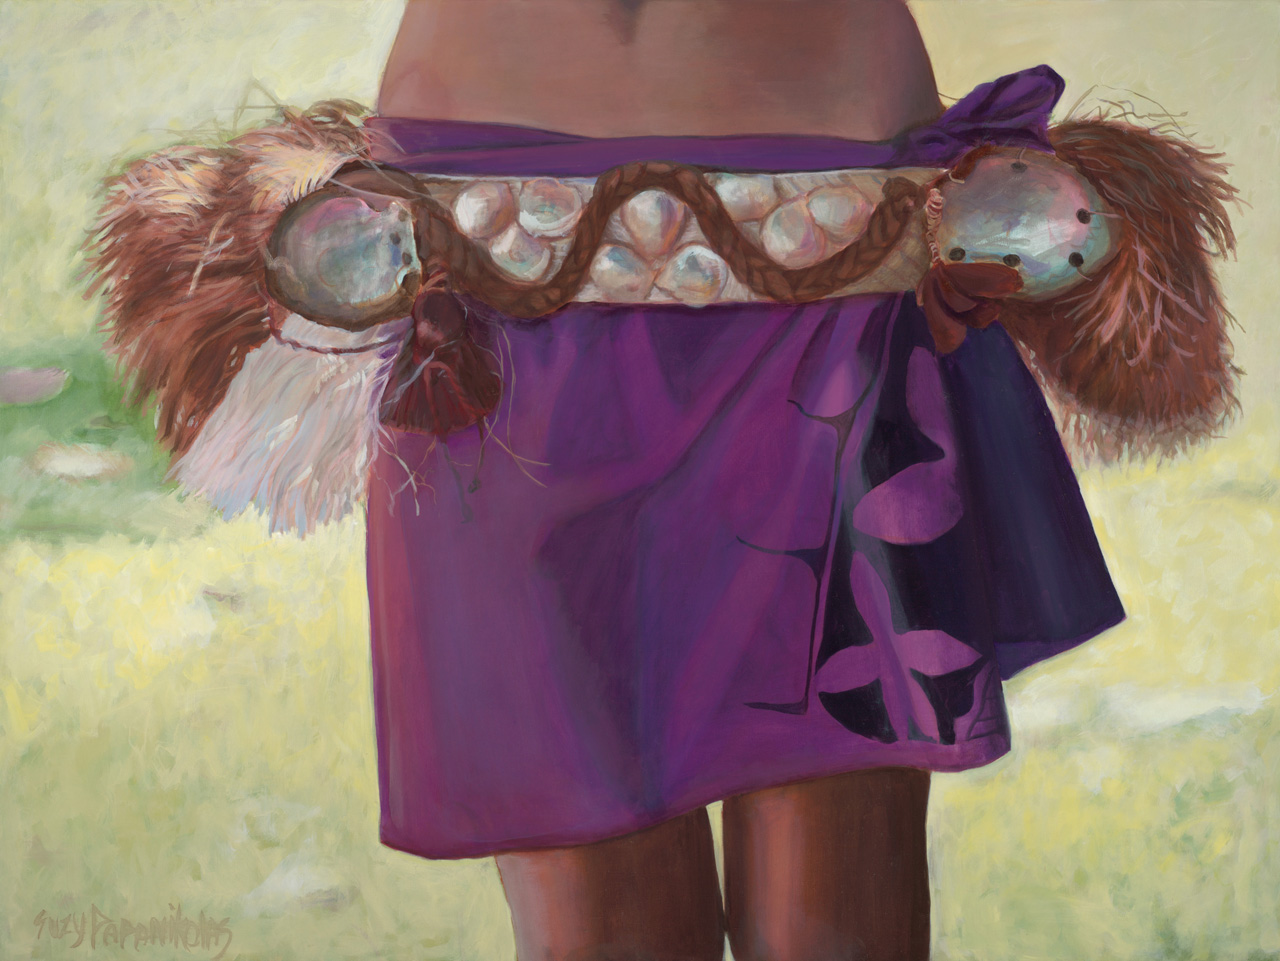 The torso of a female hula dancer wearing purple hula attire